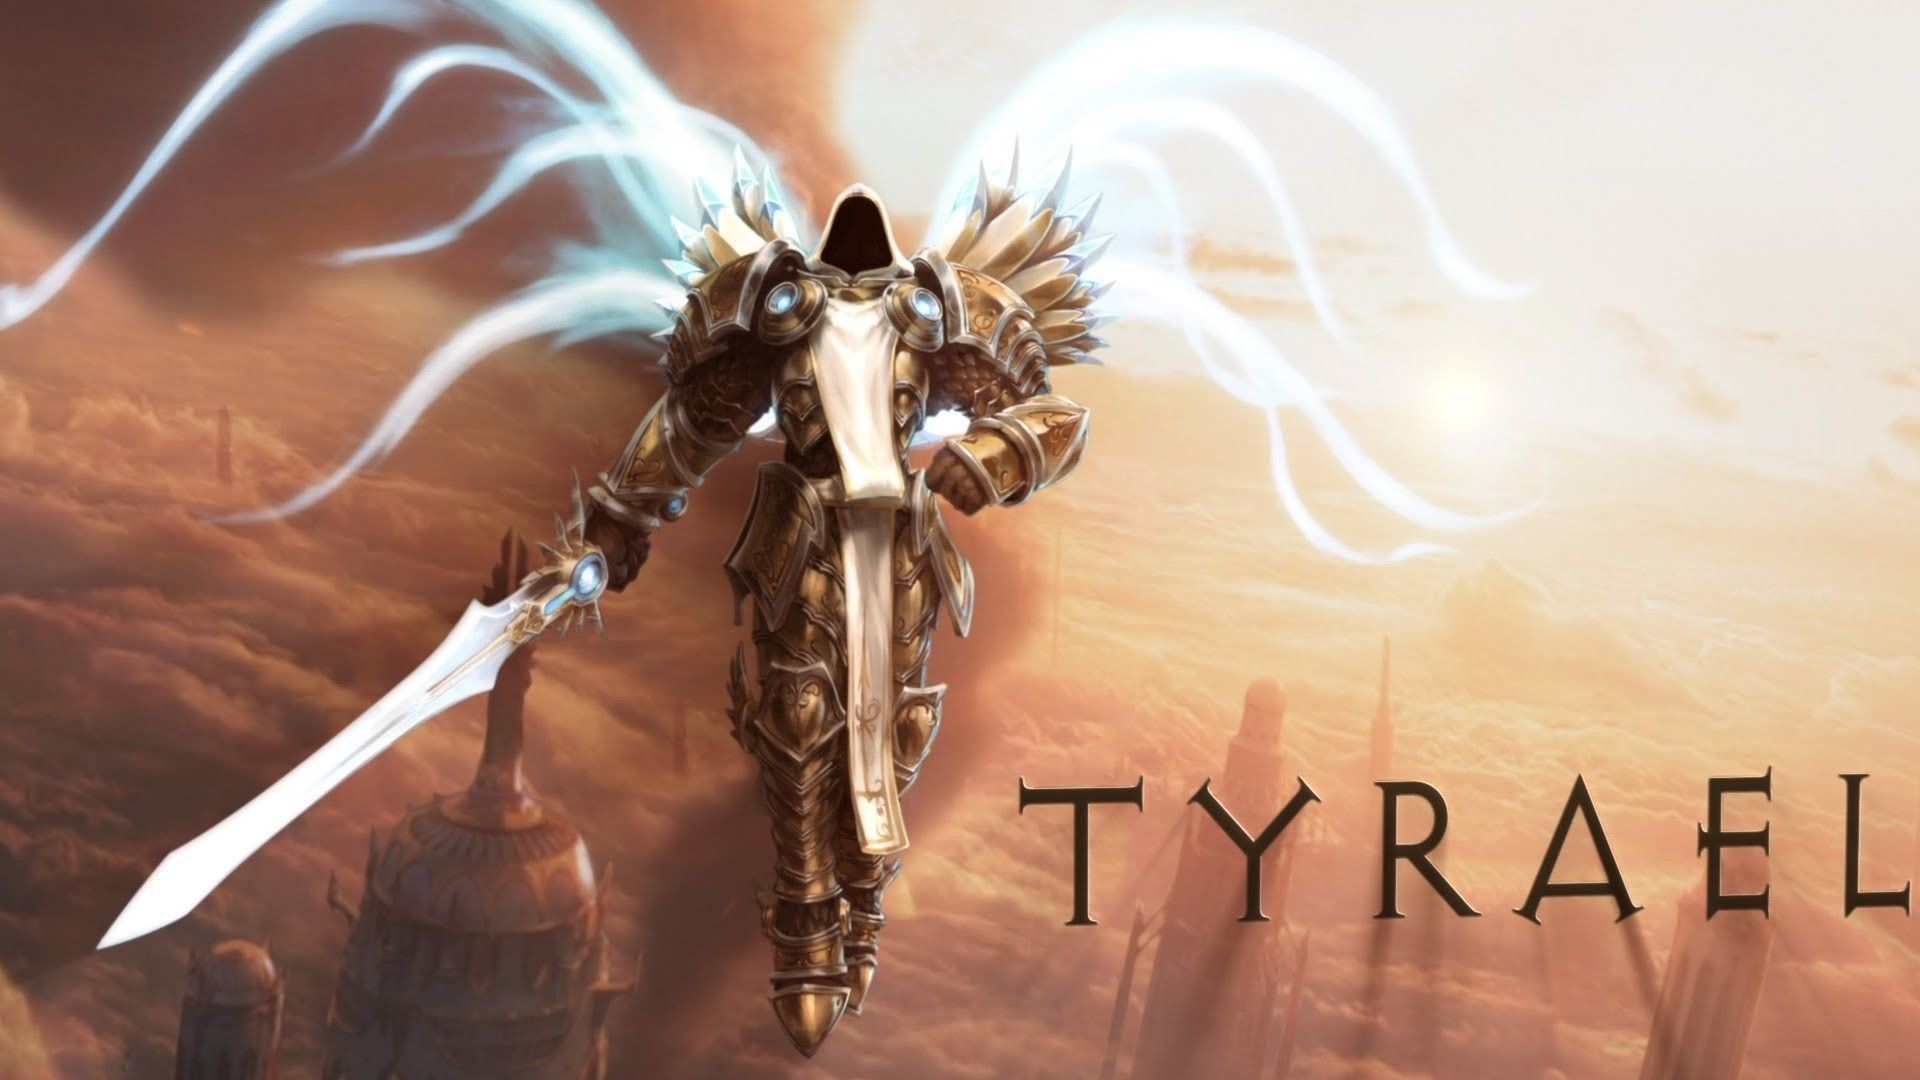 Res: 1920x1080, tyrael-wallpapers